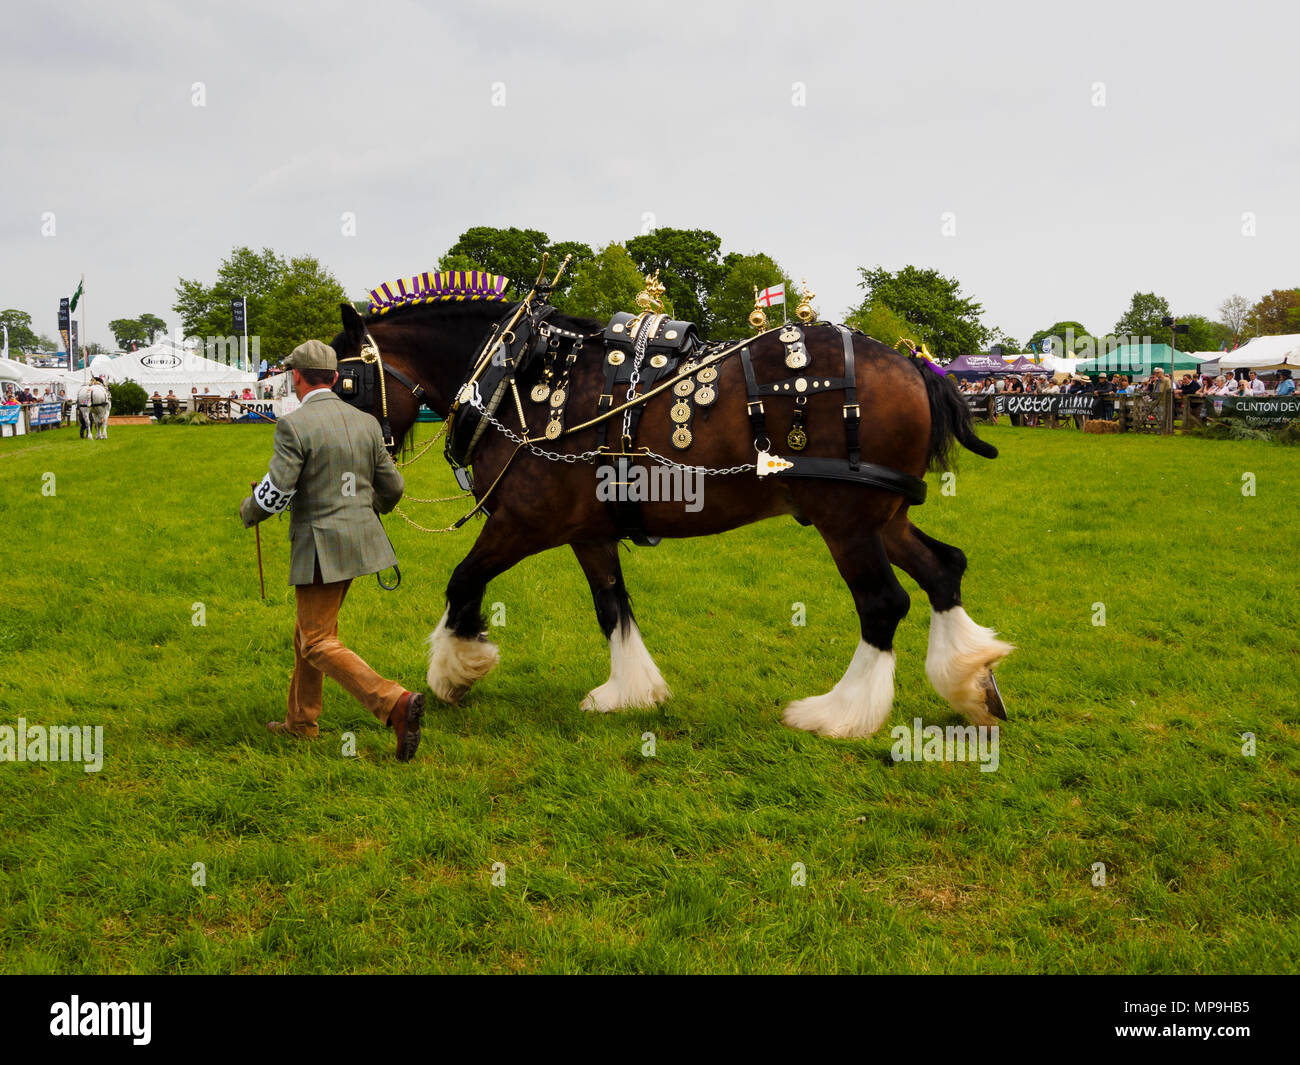 Shire horse Fifield Admiral in full brass decorated harness in hand at the Devon County show 2018 - Stock Image